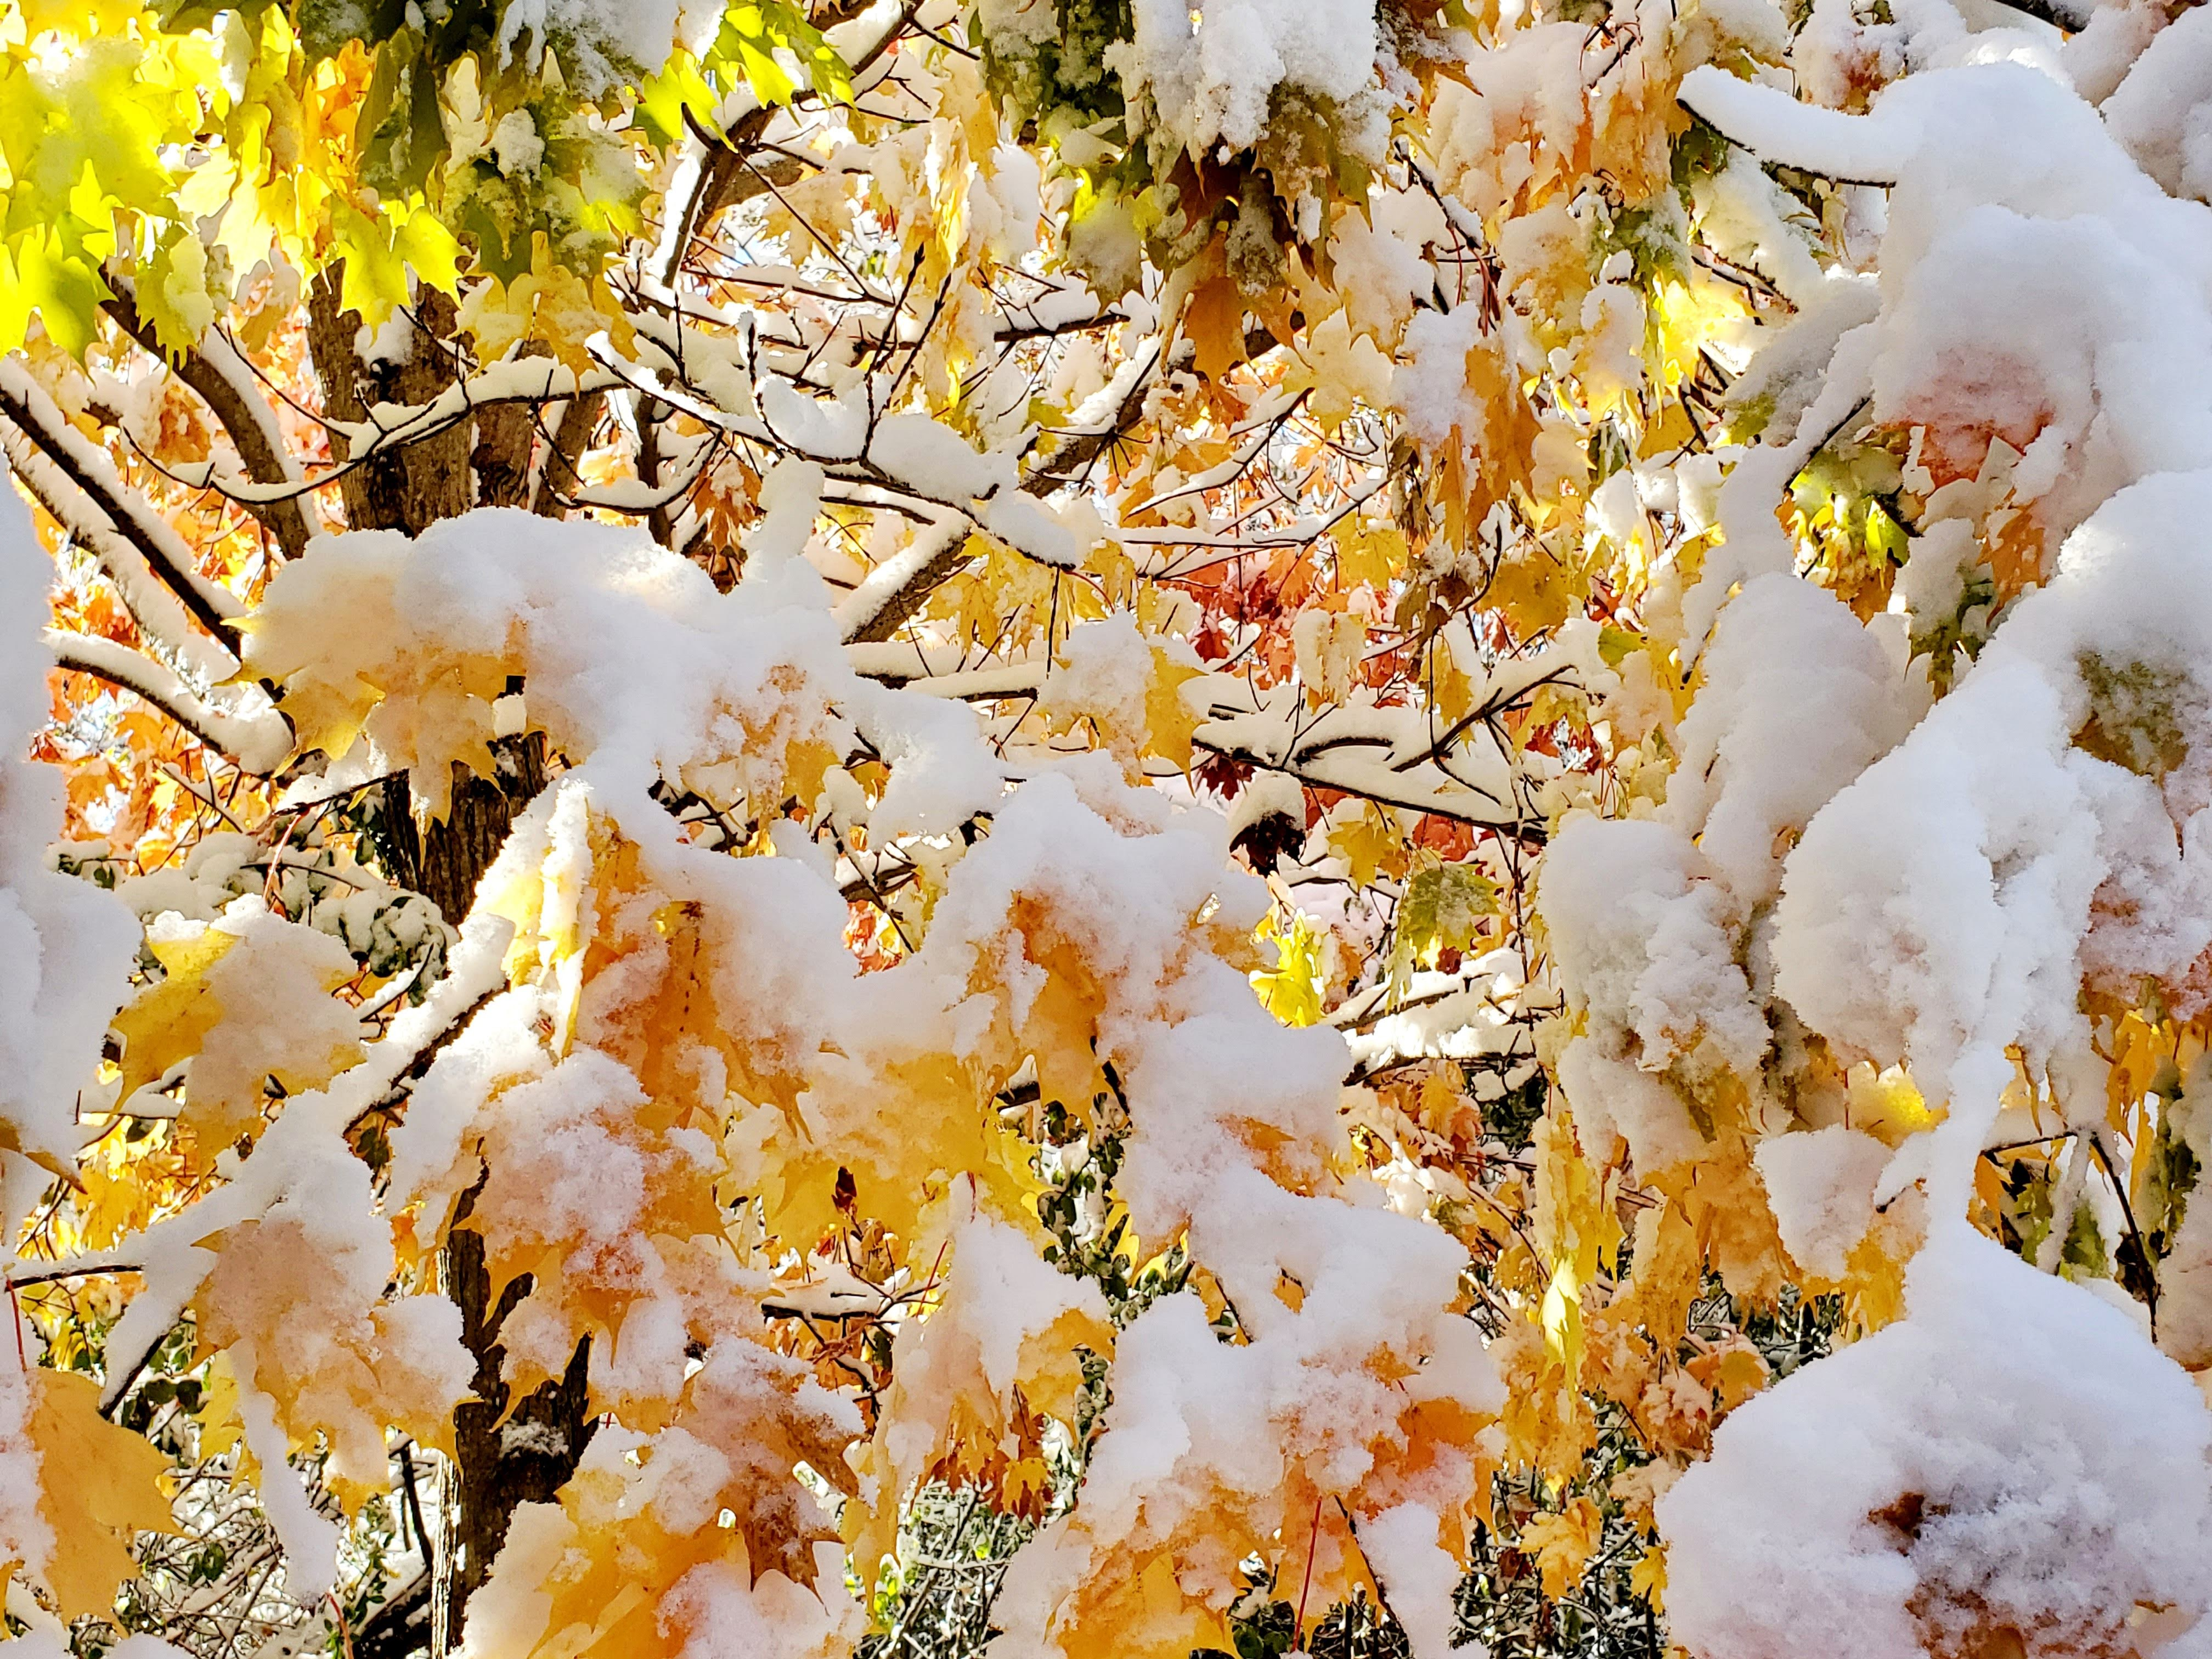 yellow leaves covered in snow